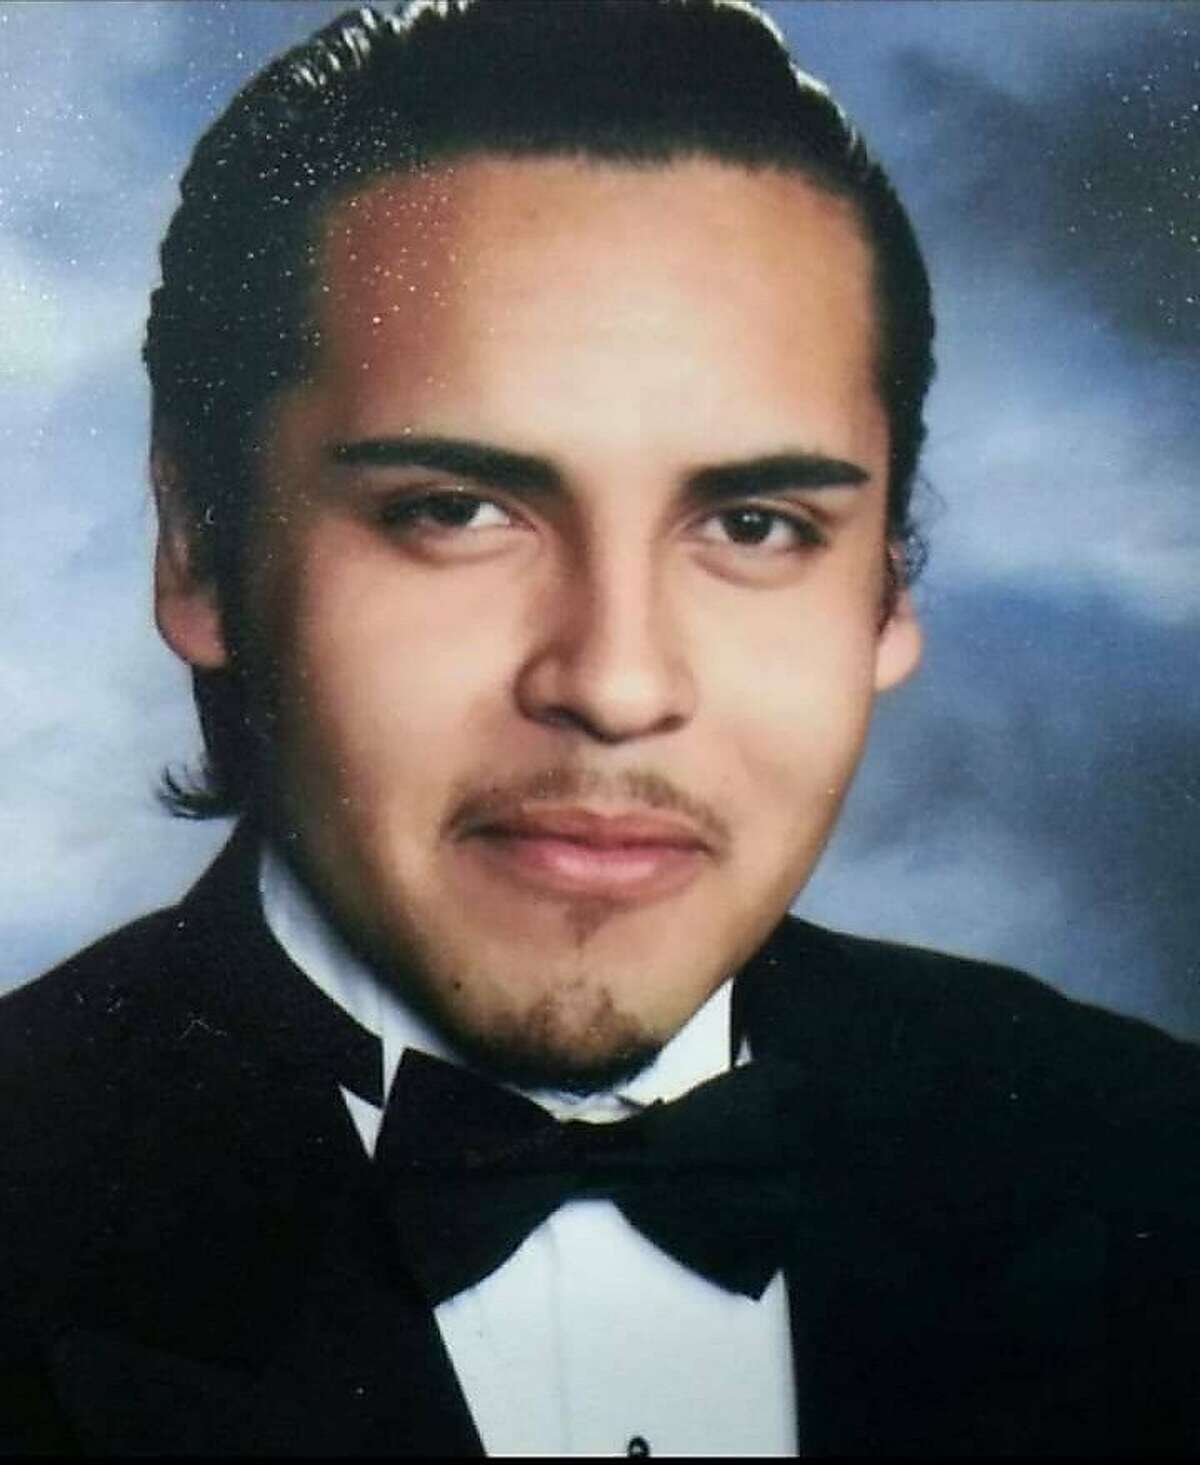 This undated photographs shows Mario Arenales Gonzalez, who was identified as the 26-year old Oakland resident who died in police custody on a residential Alameda street Monday morning.